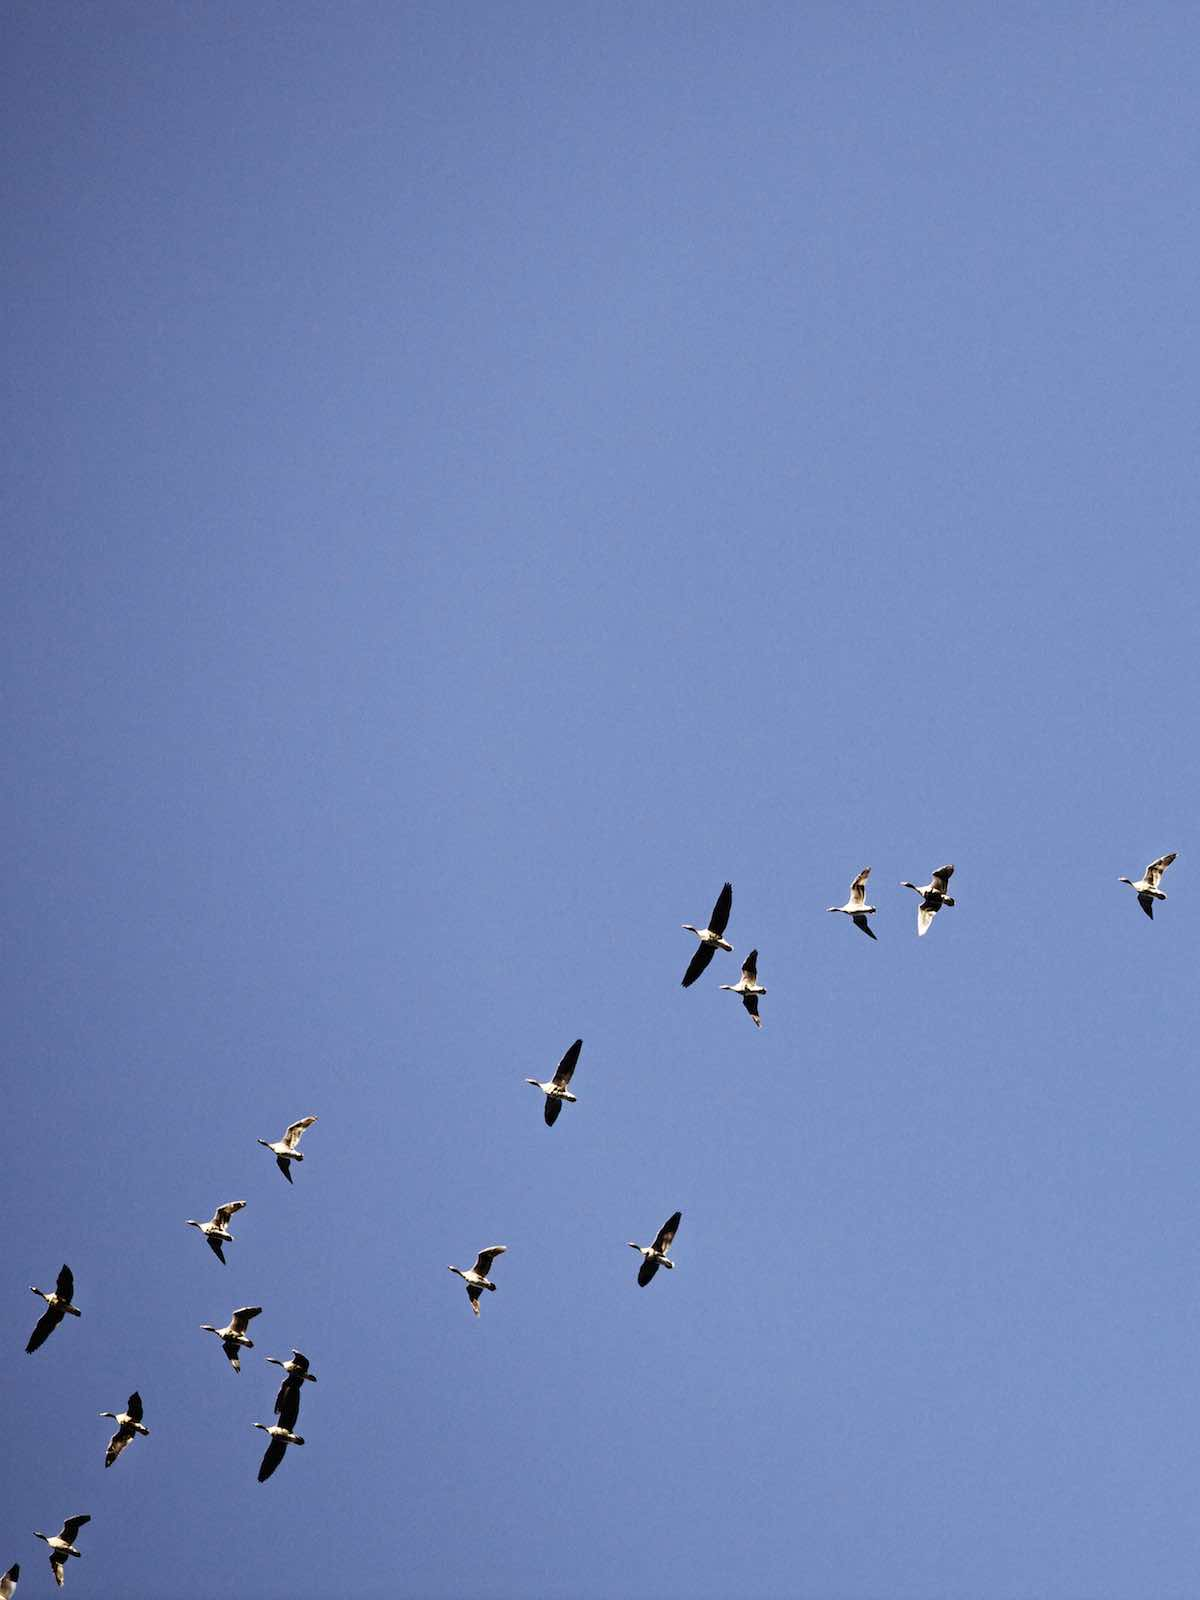 Jody Horton Photography - Ducks flying across a blue sky.